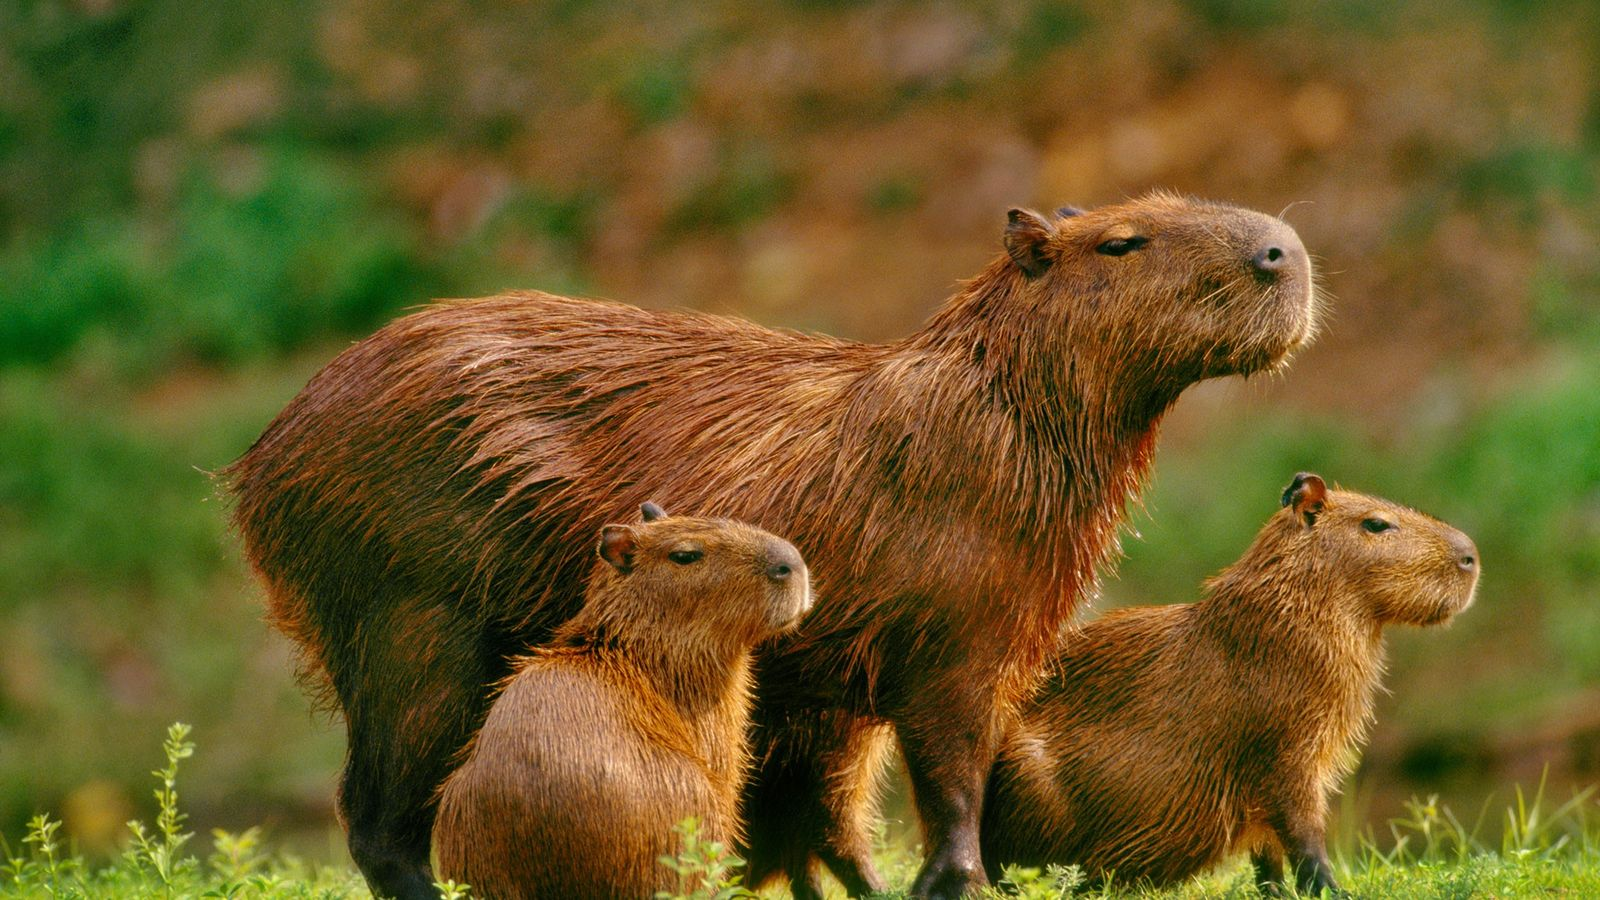 A mother capybara and her young are seen in Pantanal, Brazil.